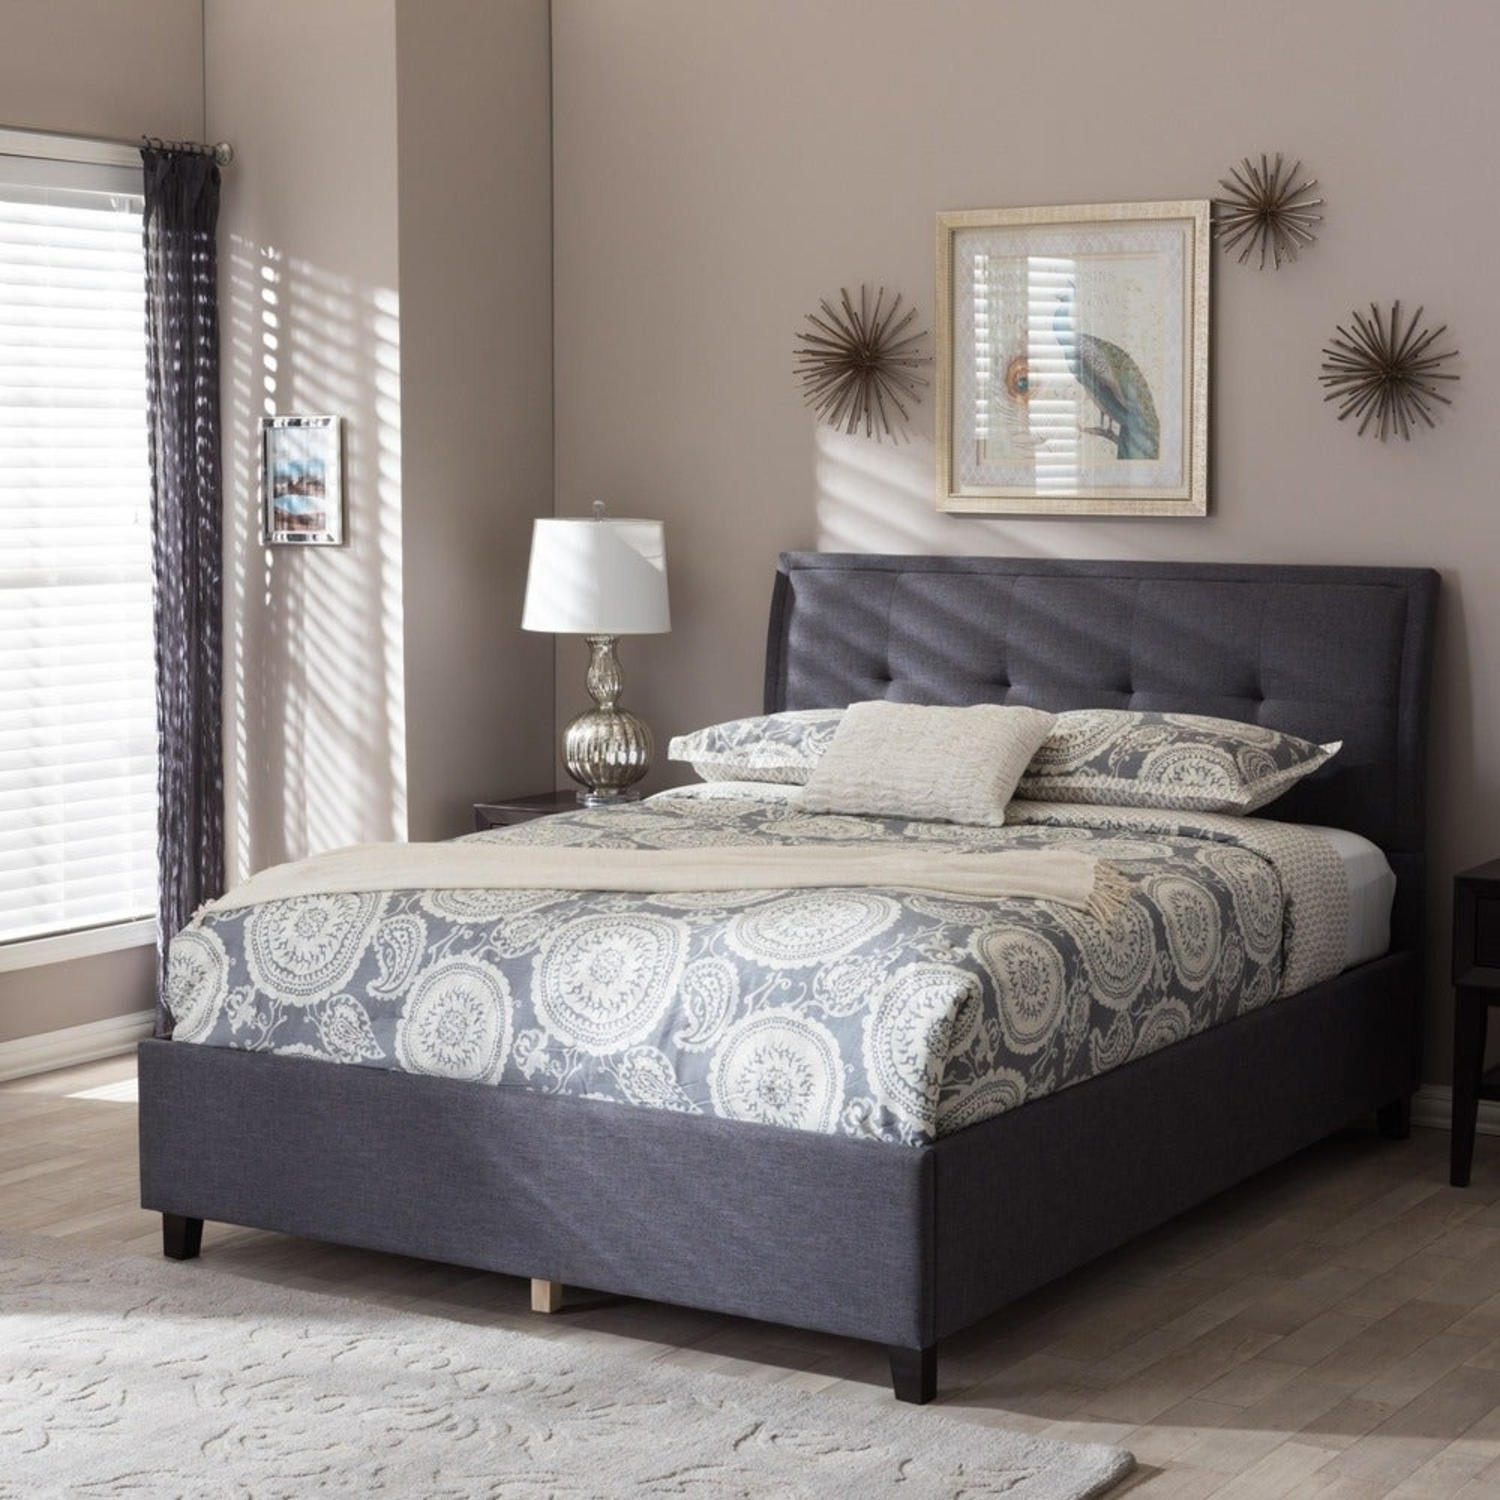 Queen Charcoal Tufted Storage Bed - image-3